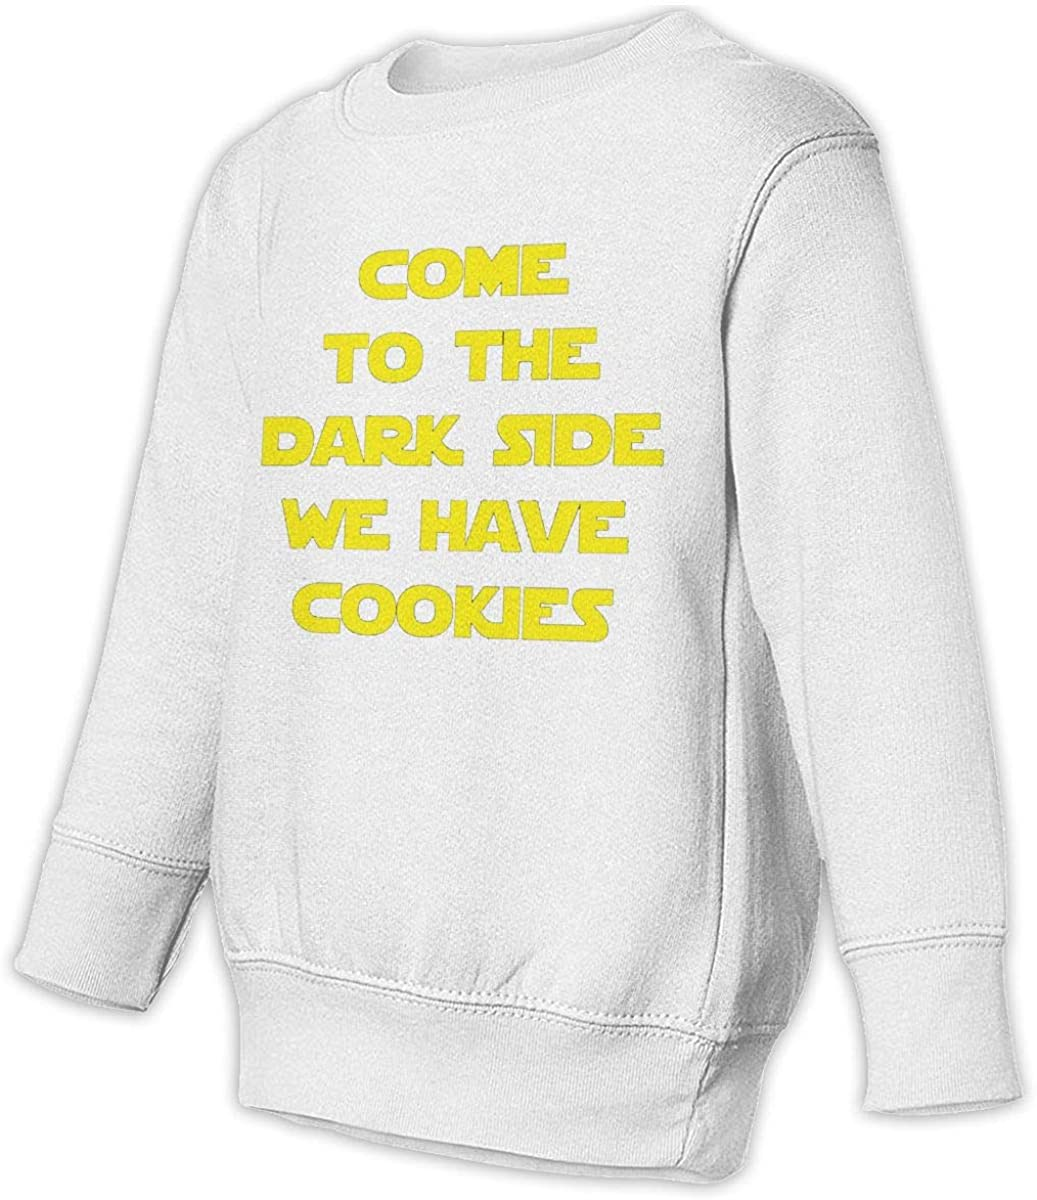 NMDJC CCQ Come to The Dark Side Cookies Baby Sweatshirt Lovely Kids Hoodies Soft Sweaters